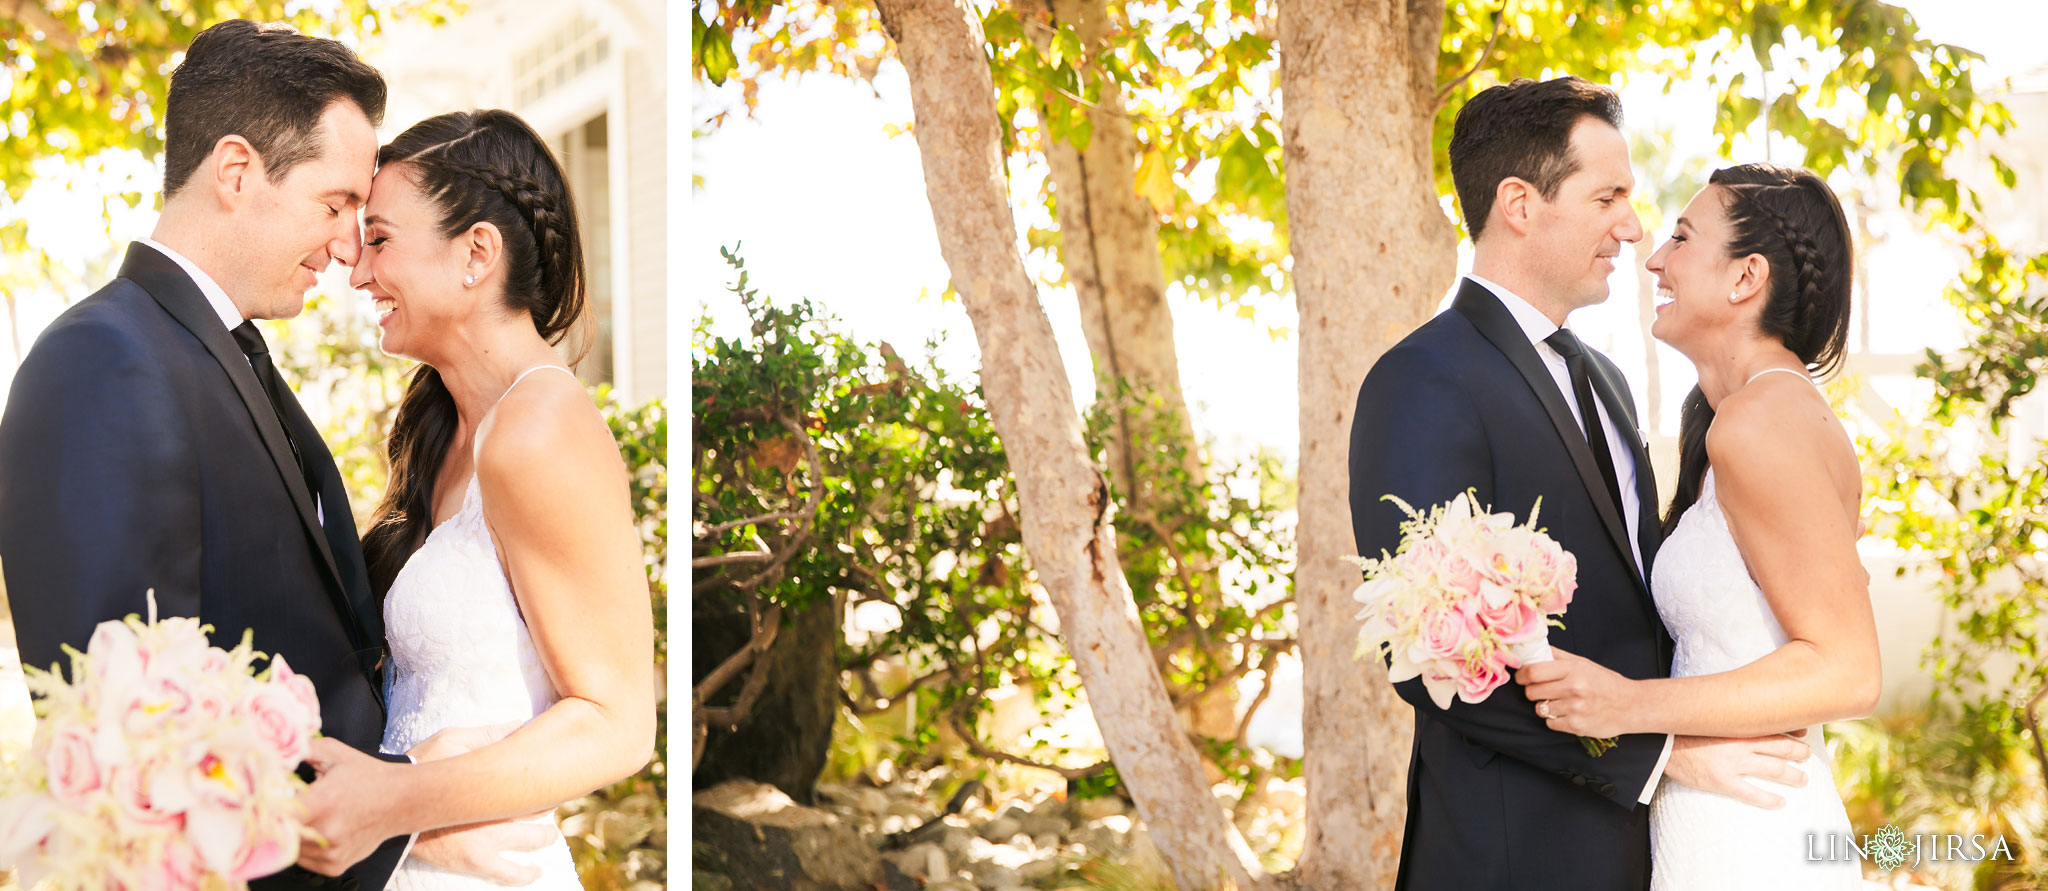 16 Shutters on the Beach Santa Monica Wedding Photography